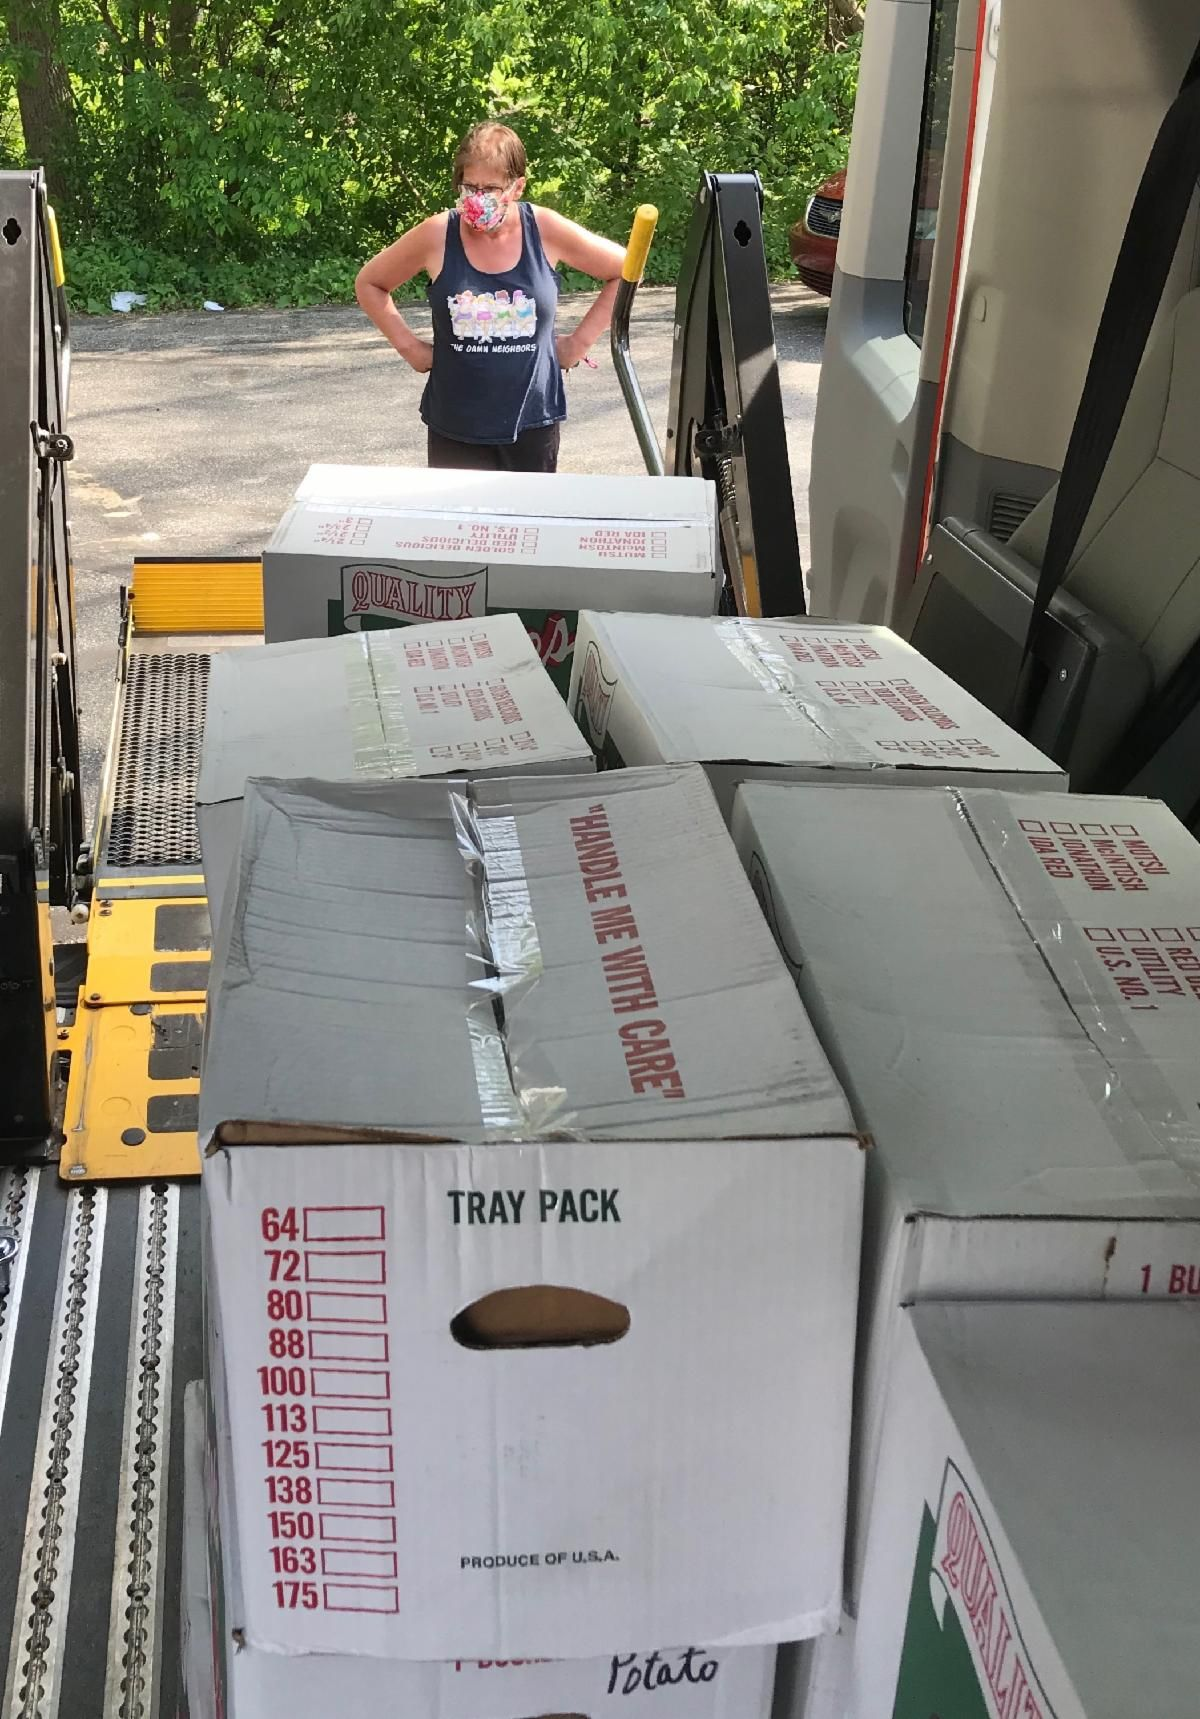 dnmm employee wearing mask prepares to unload boxes from van